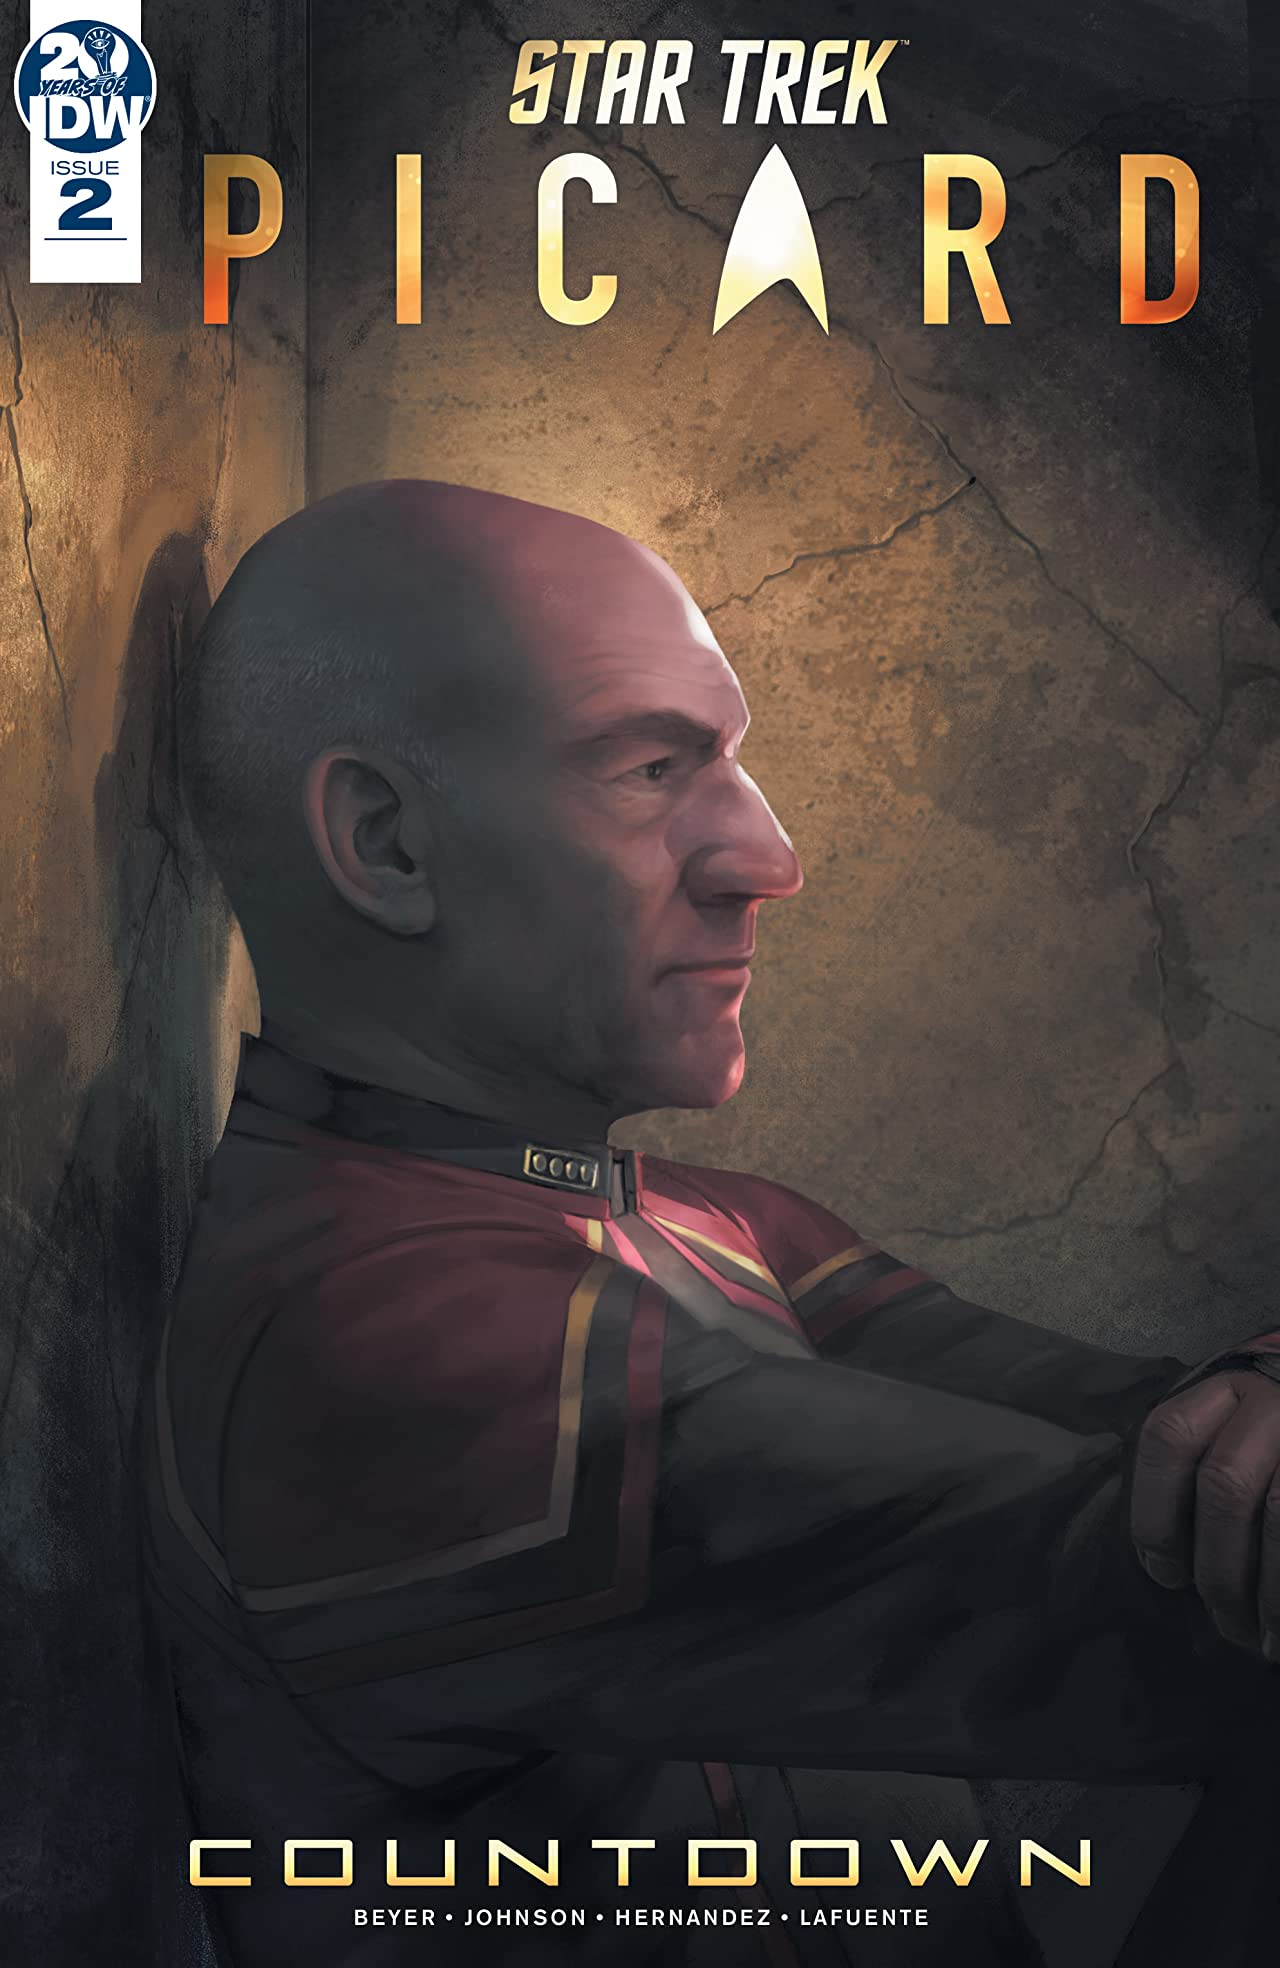 Star Trek: Picard—Countdown #2 (of 3)